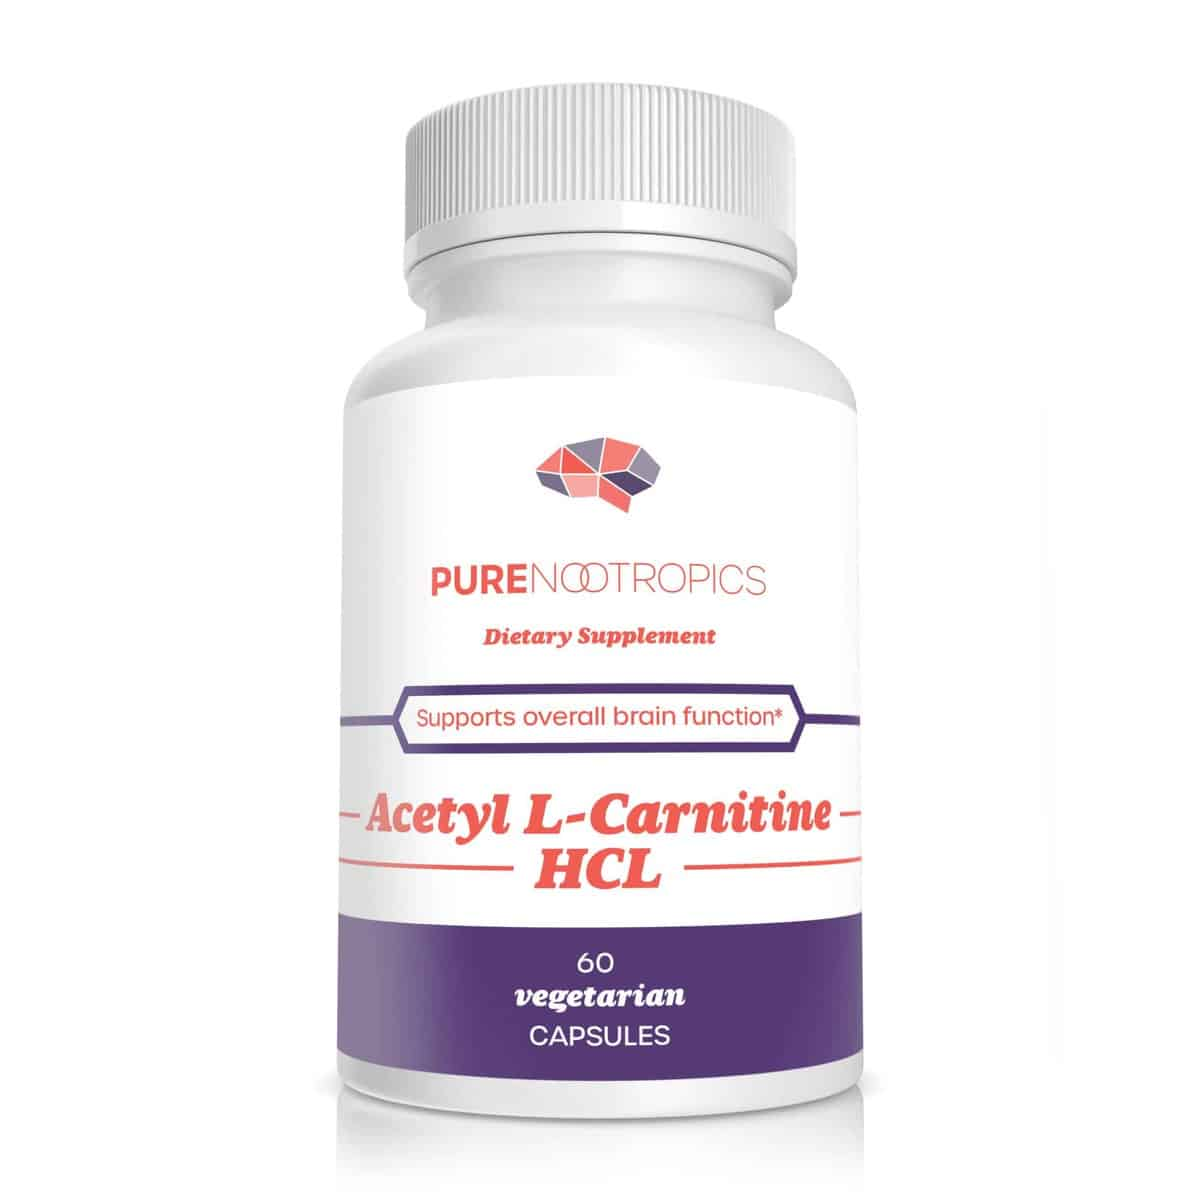 where to buy Acetyl L-Carnitine (ALCAR), buy Acetyl L-Carnitine (ALCAR) from pure nootropics